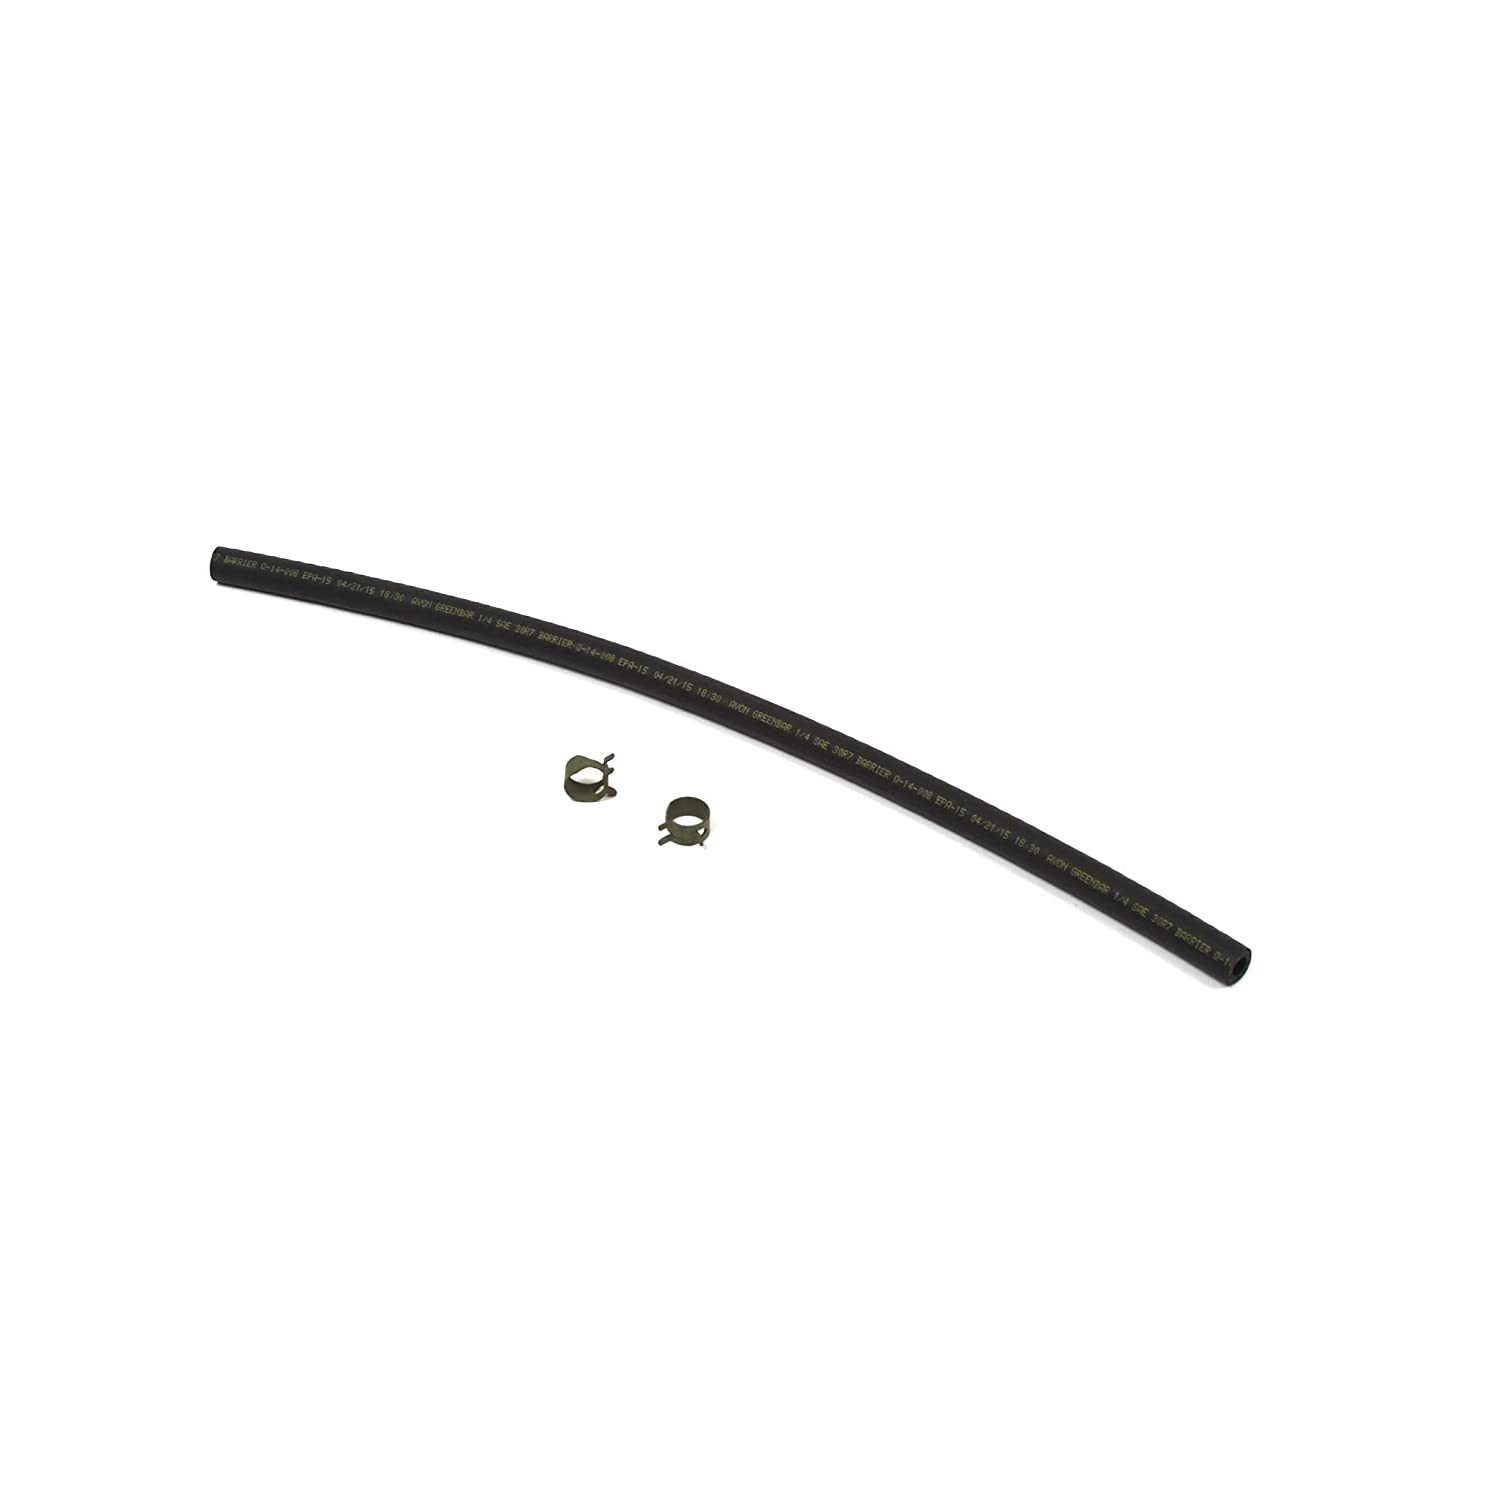 Briggs and Stratton Genuine 791766 Fuel Line with Pre-Cut to Required Length